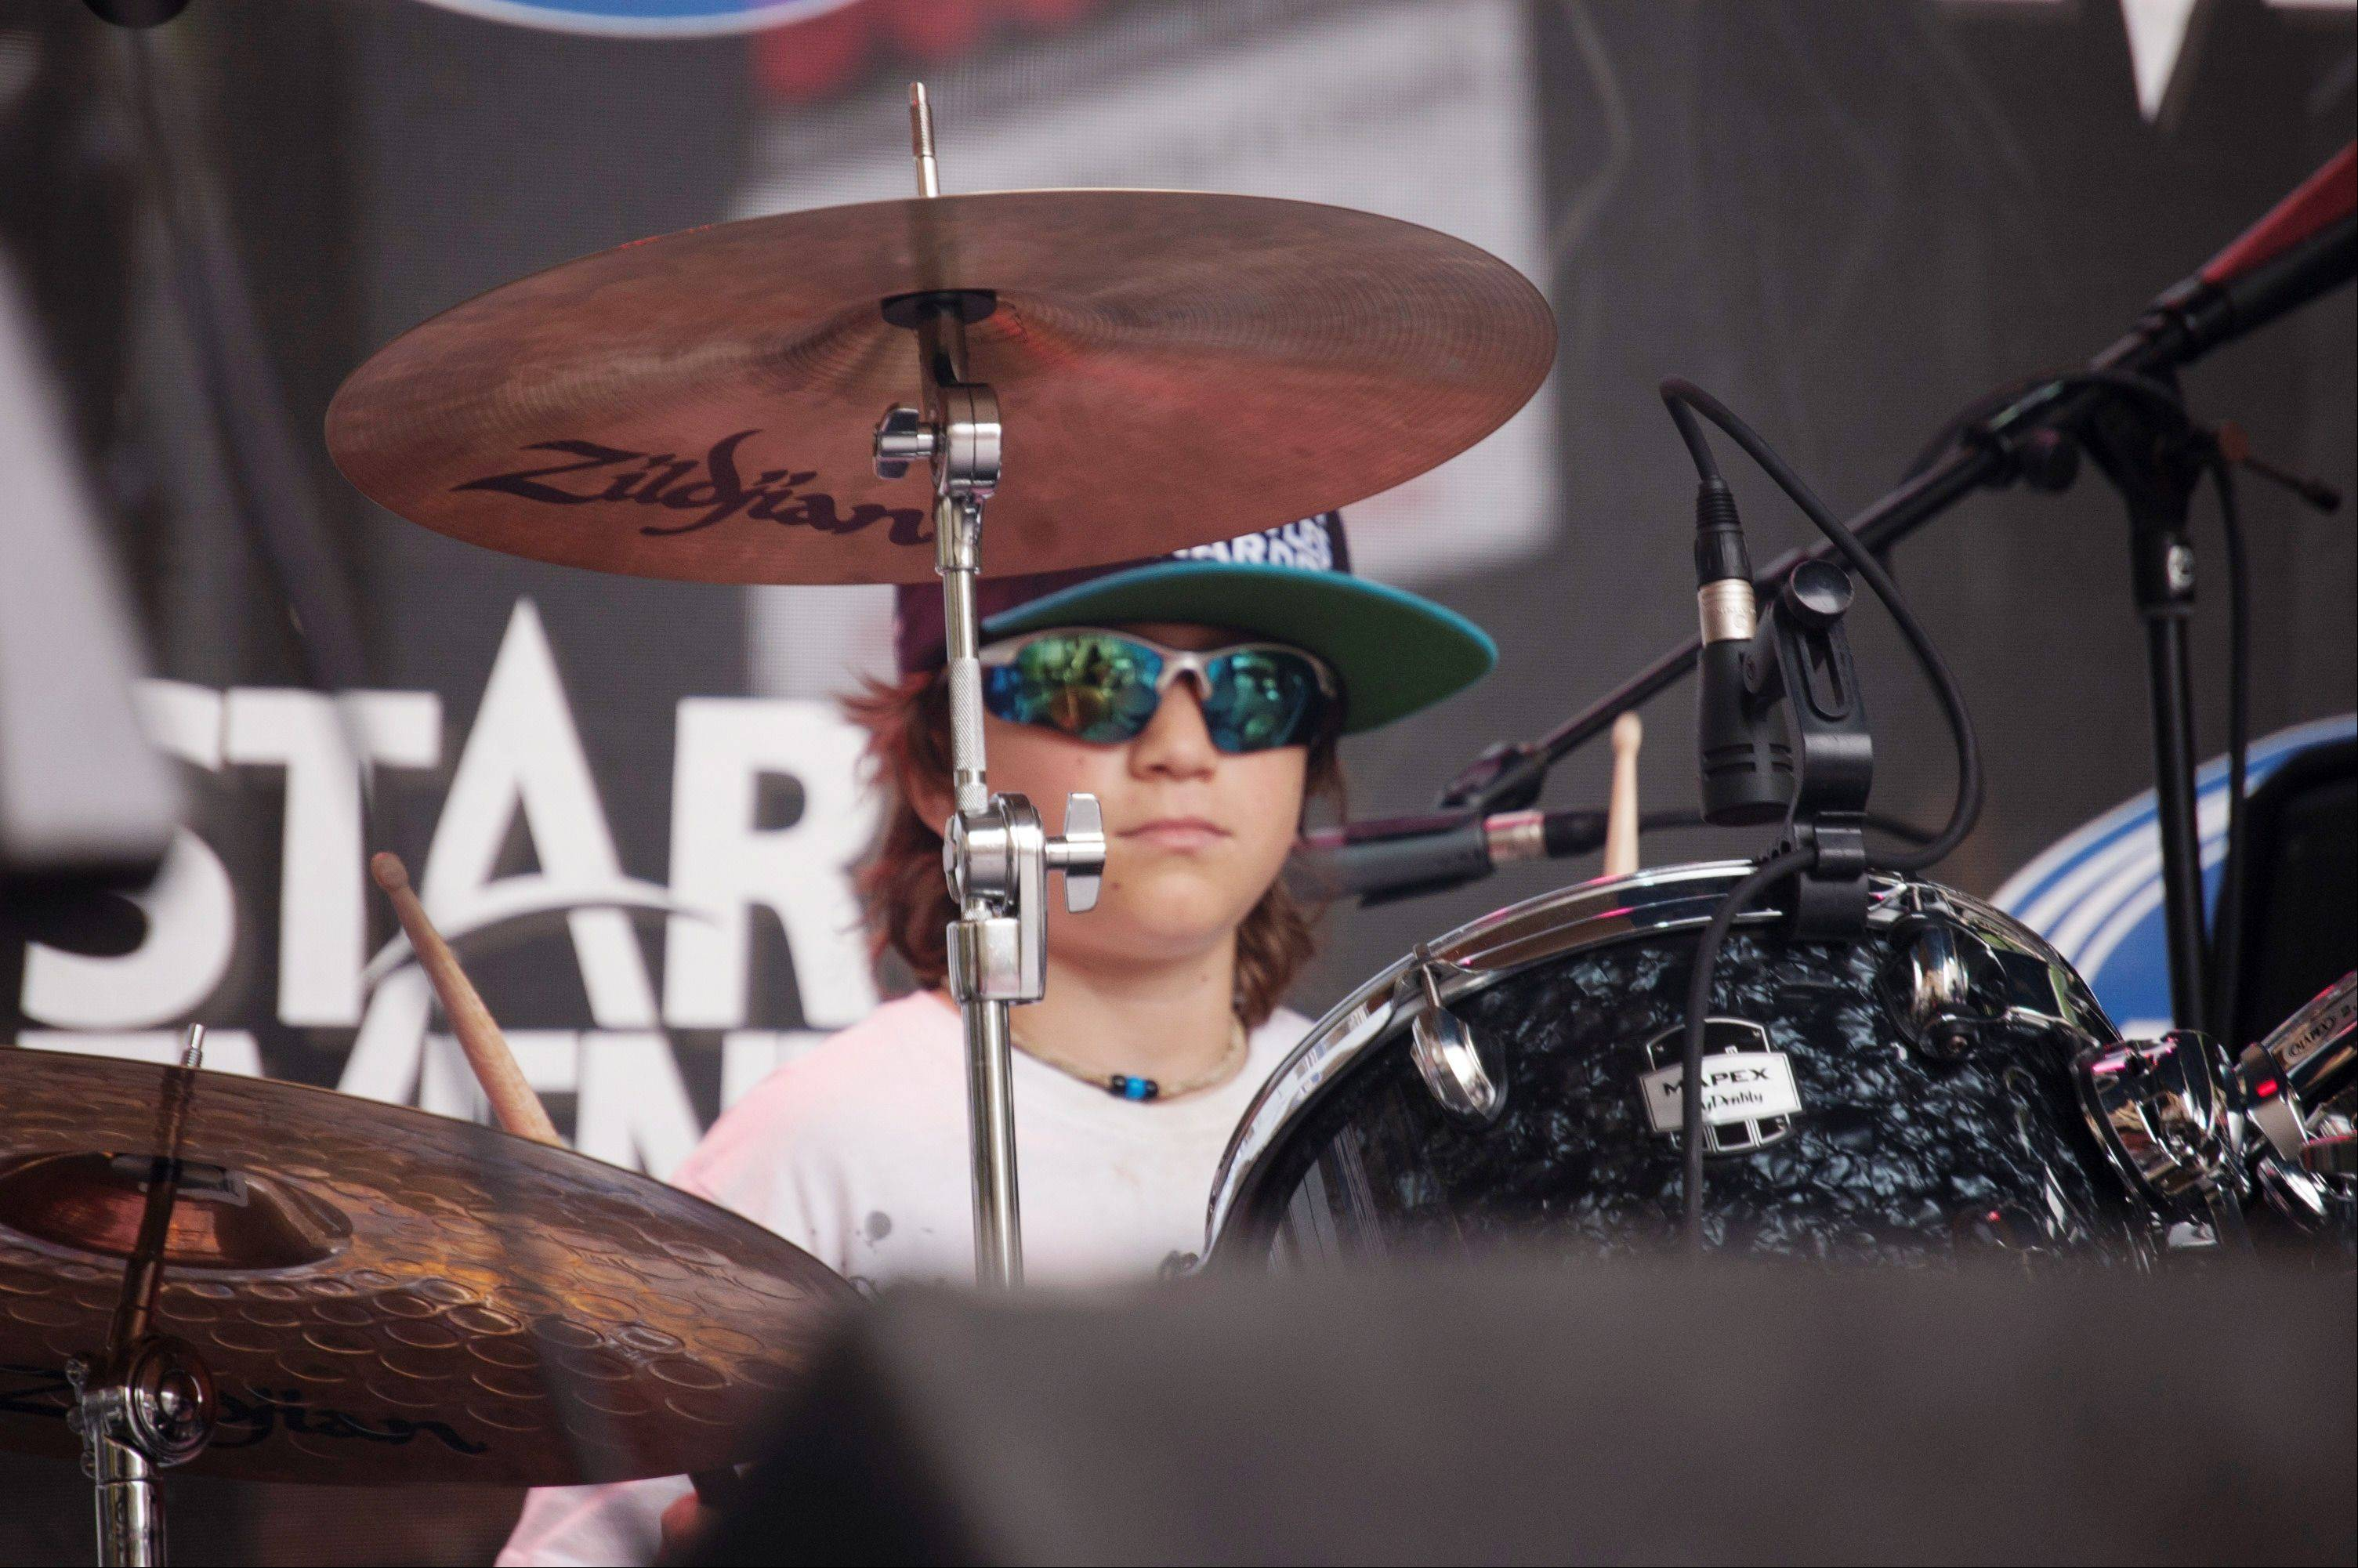 Drummer Cohen Bessler, 10, of St. Charles, during LiveWire's performance July 6 at Taste of Lakeview in Chicago.